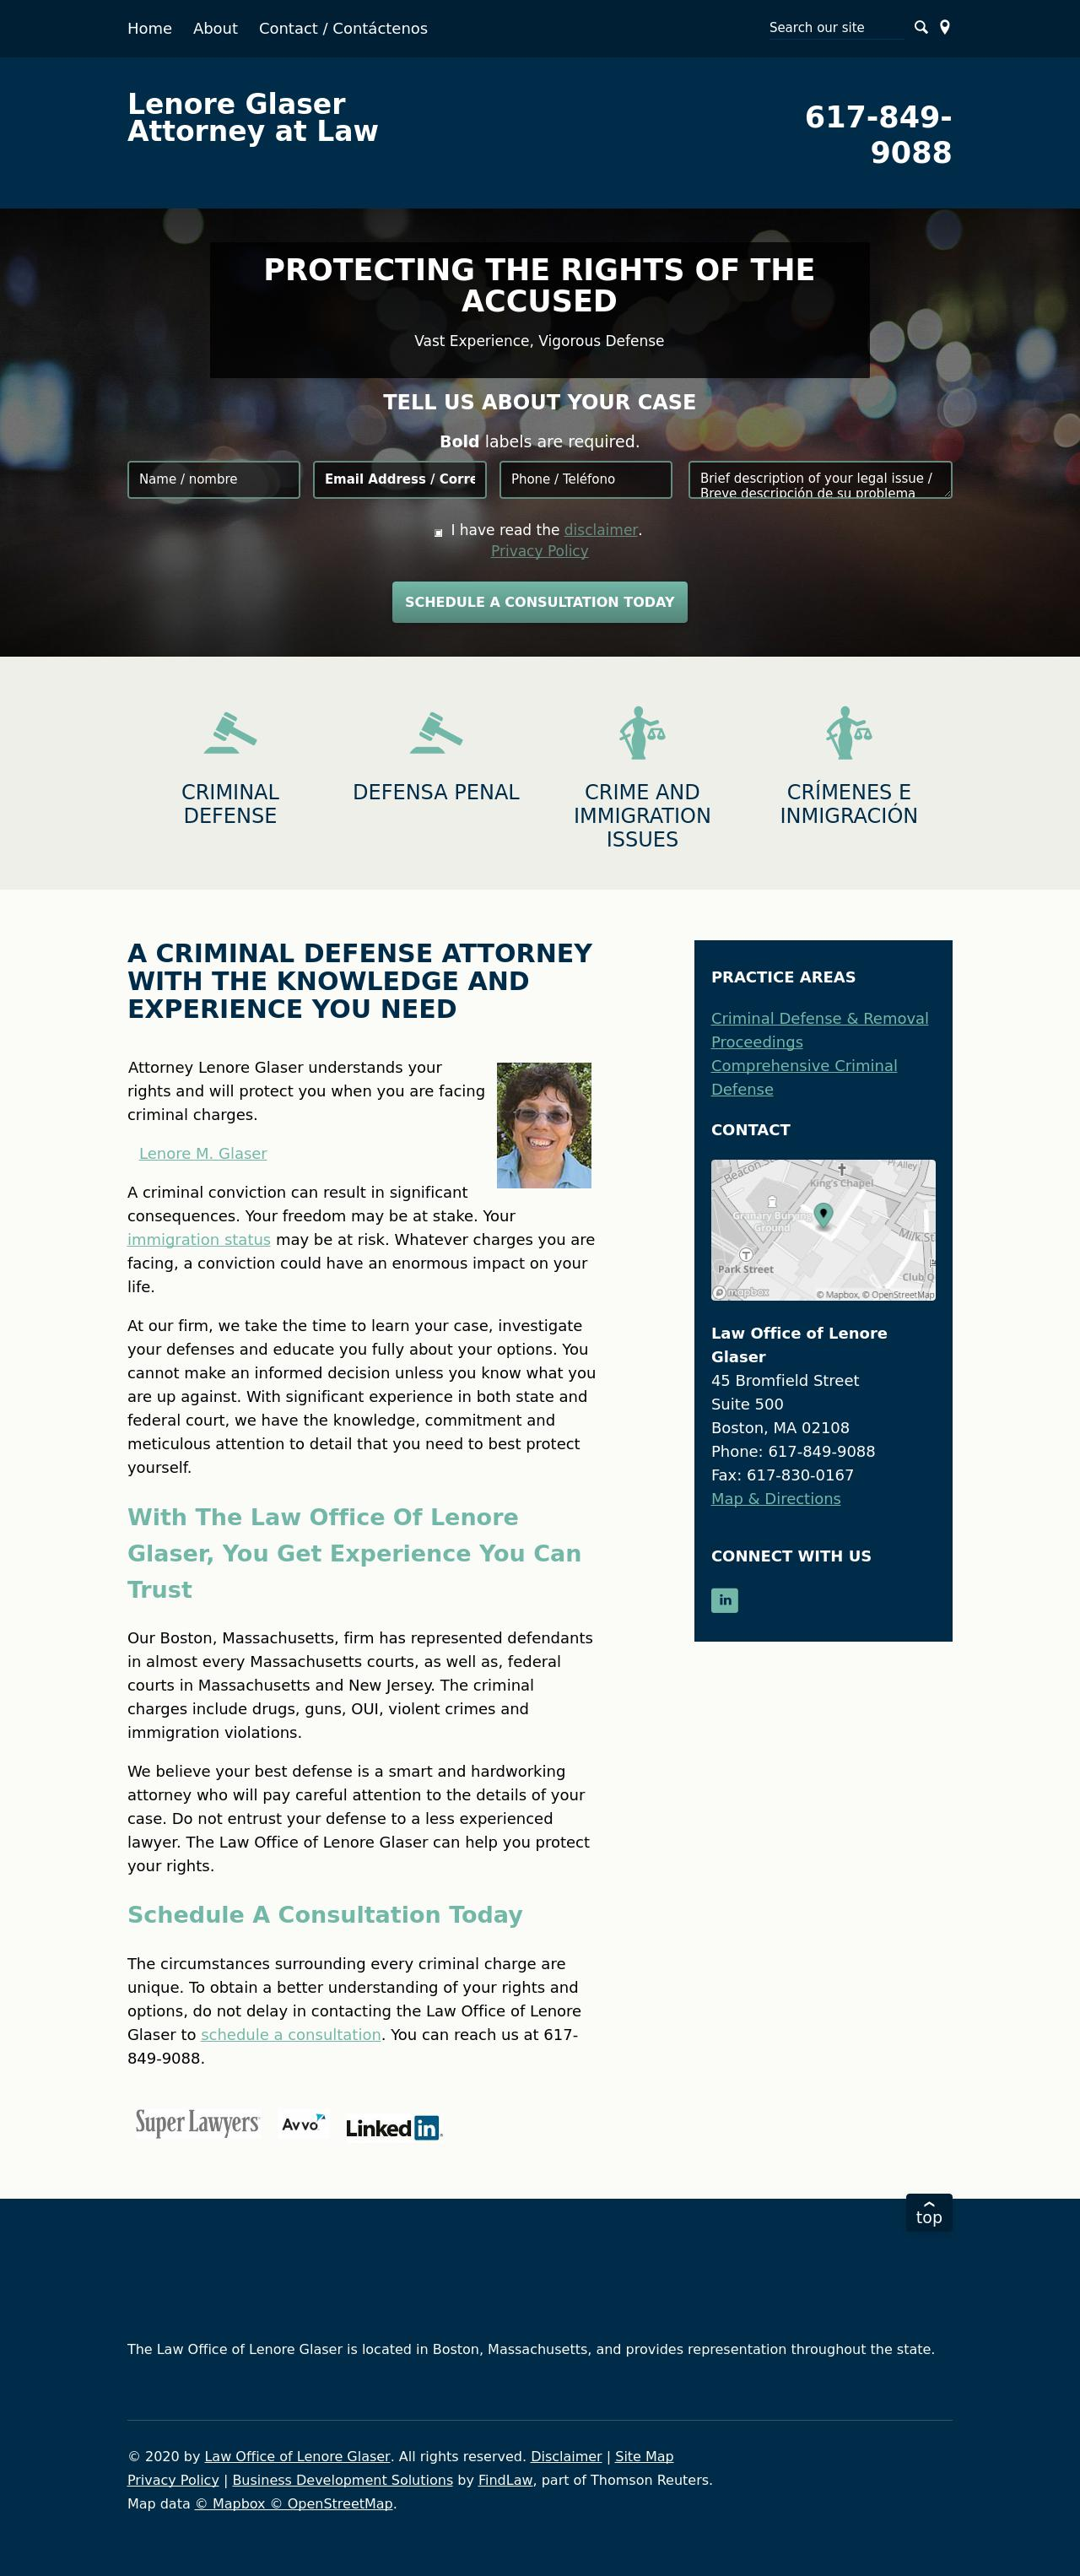 Lenore Glaser - Boston MA Lawyers